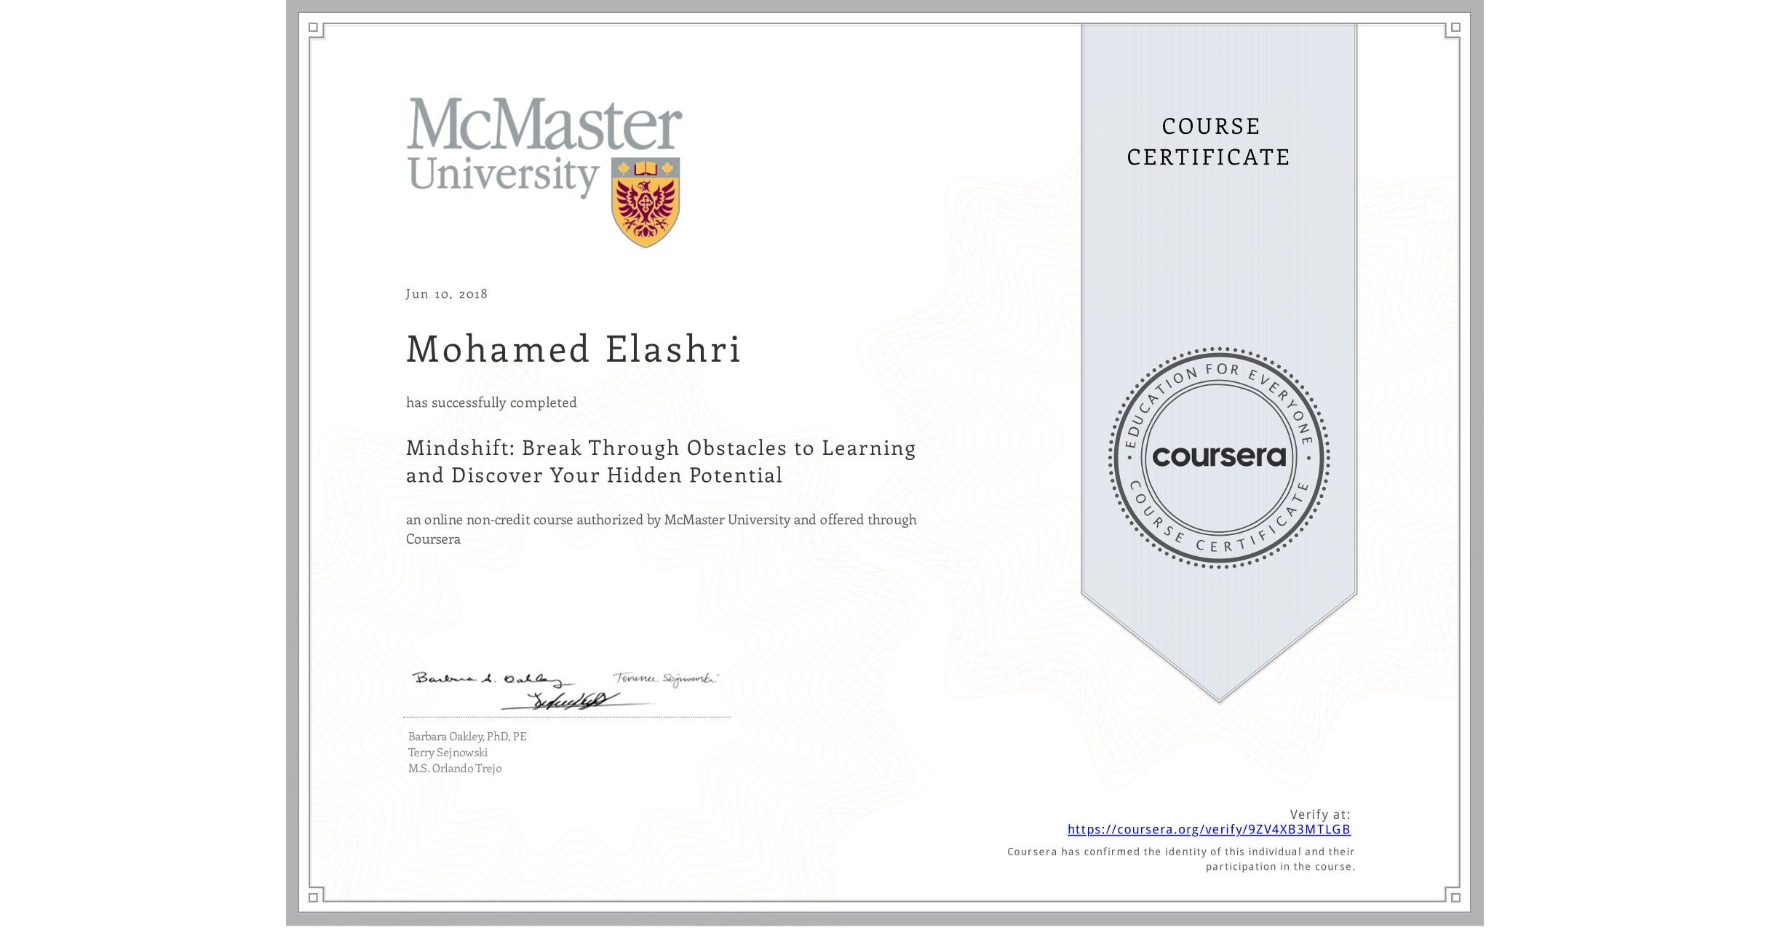 View certificate for Mohamed Elashri, Mindshift: Break Through Obstacles to Learning and Discover Your Hidden Potential, an online non-credit course authorized by McMaster University and offered through Coursera